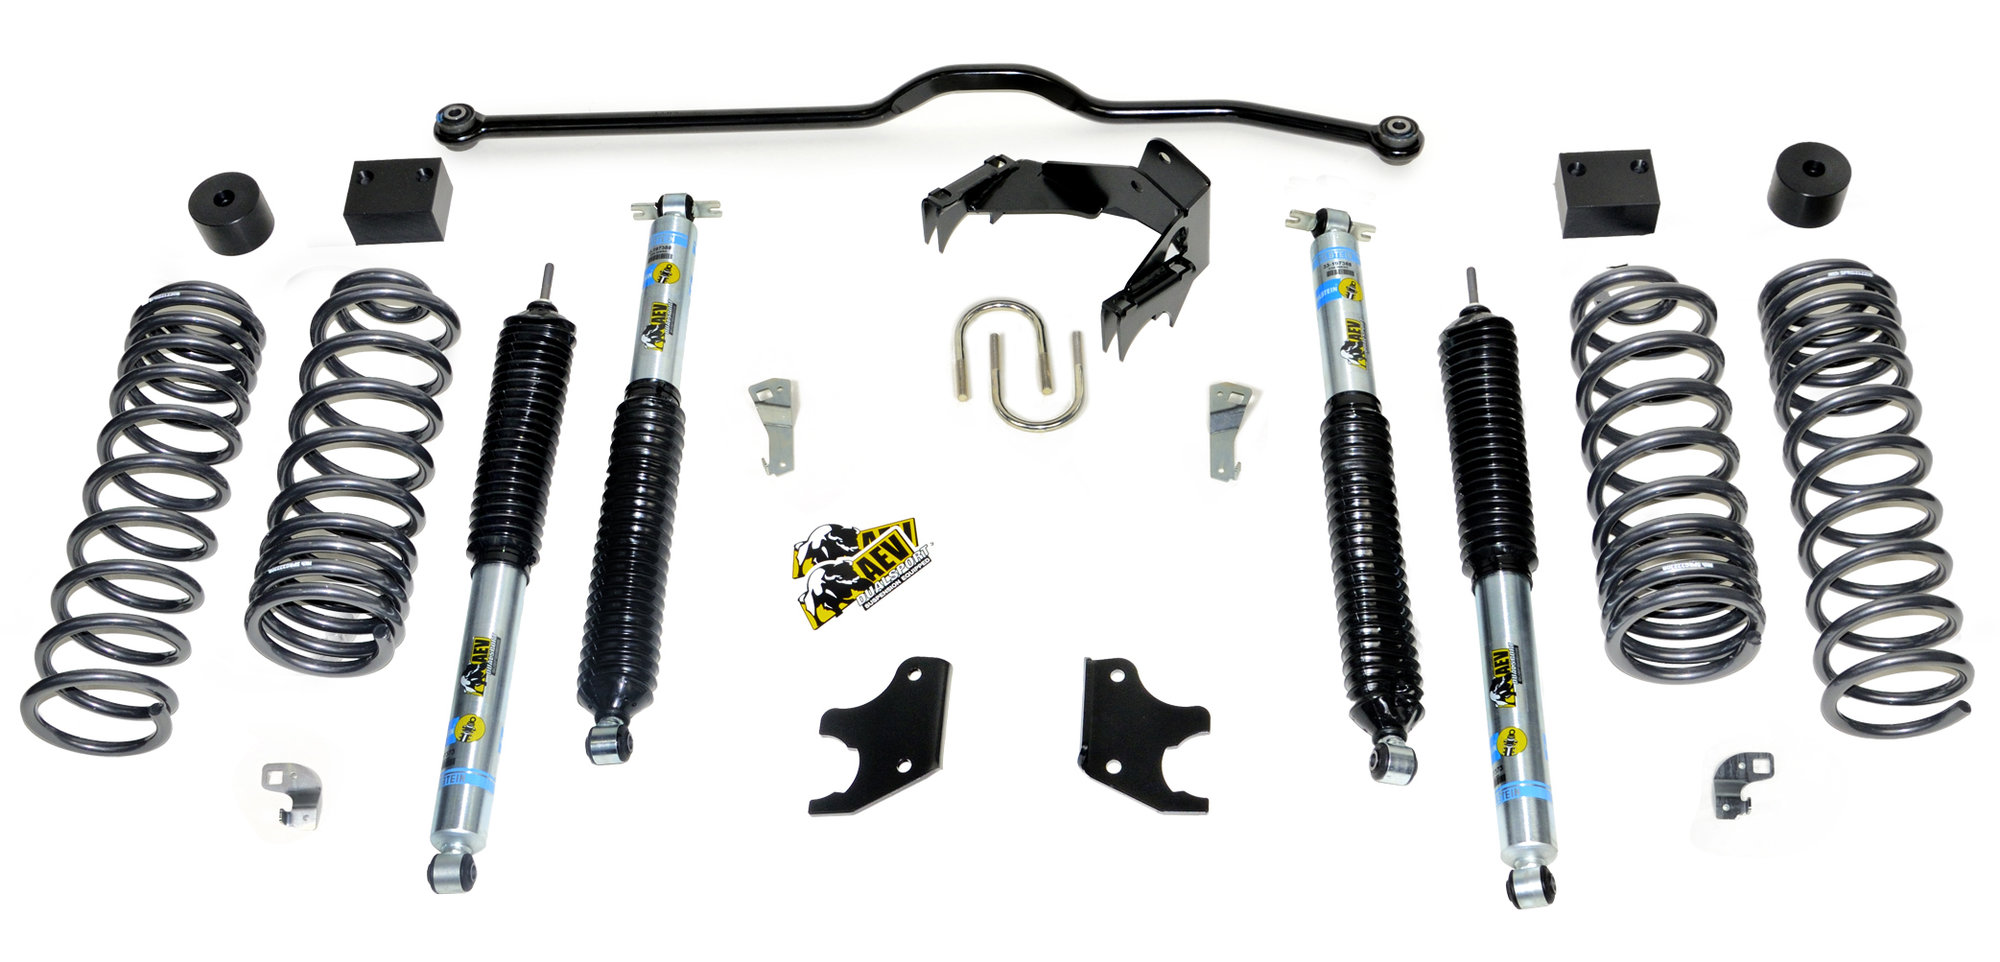 Aev 2 5 Dualsport Xt Suspension System For 07 17 Jeep